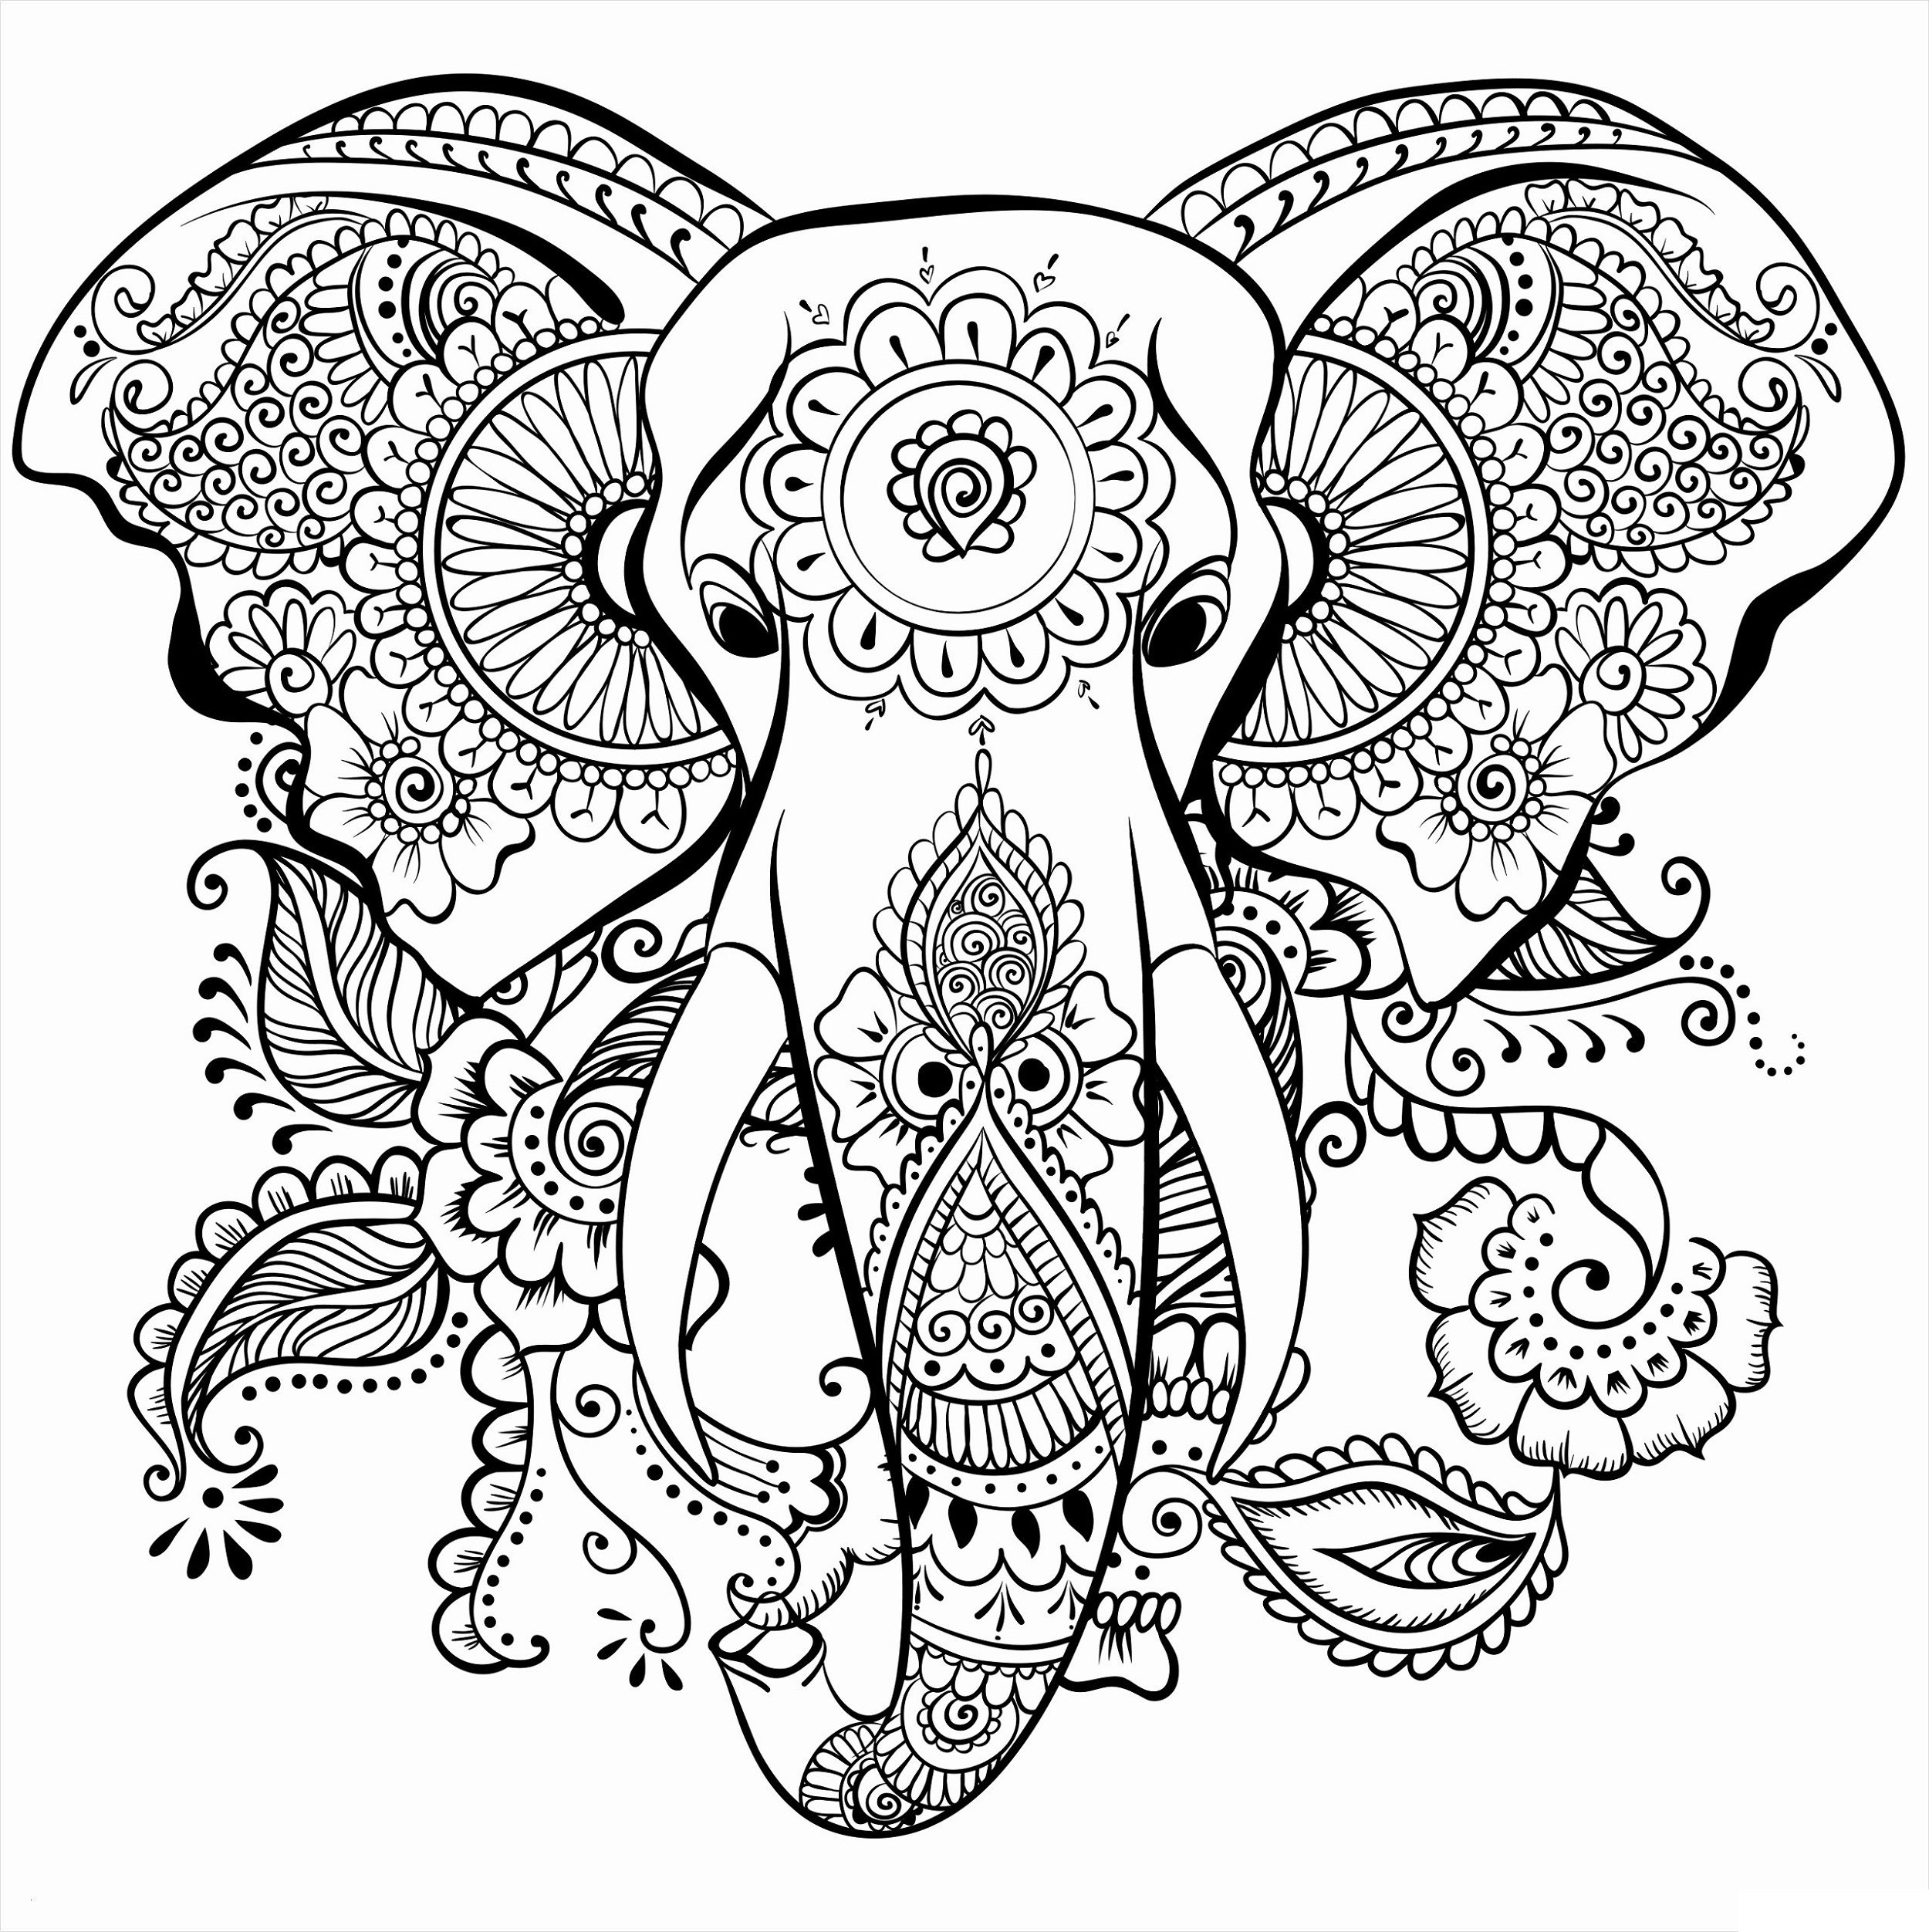 coloring adults large print coloring pages for adults at getcoloringscom coloring adults